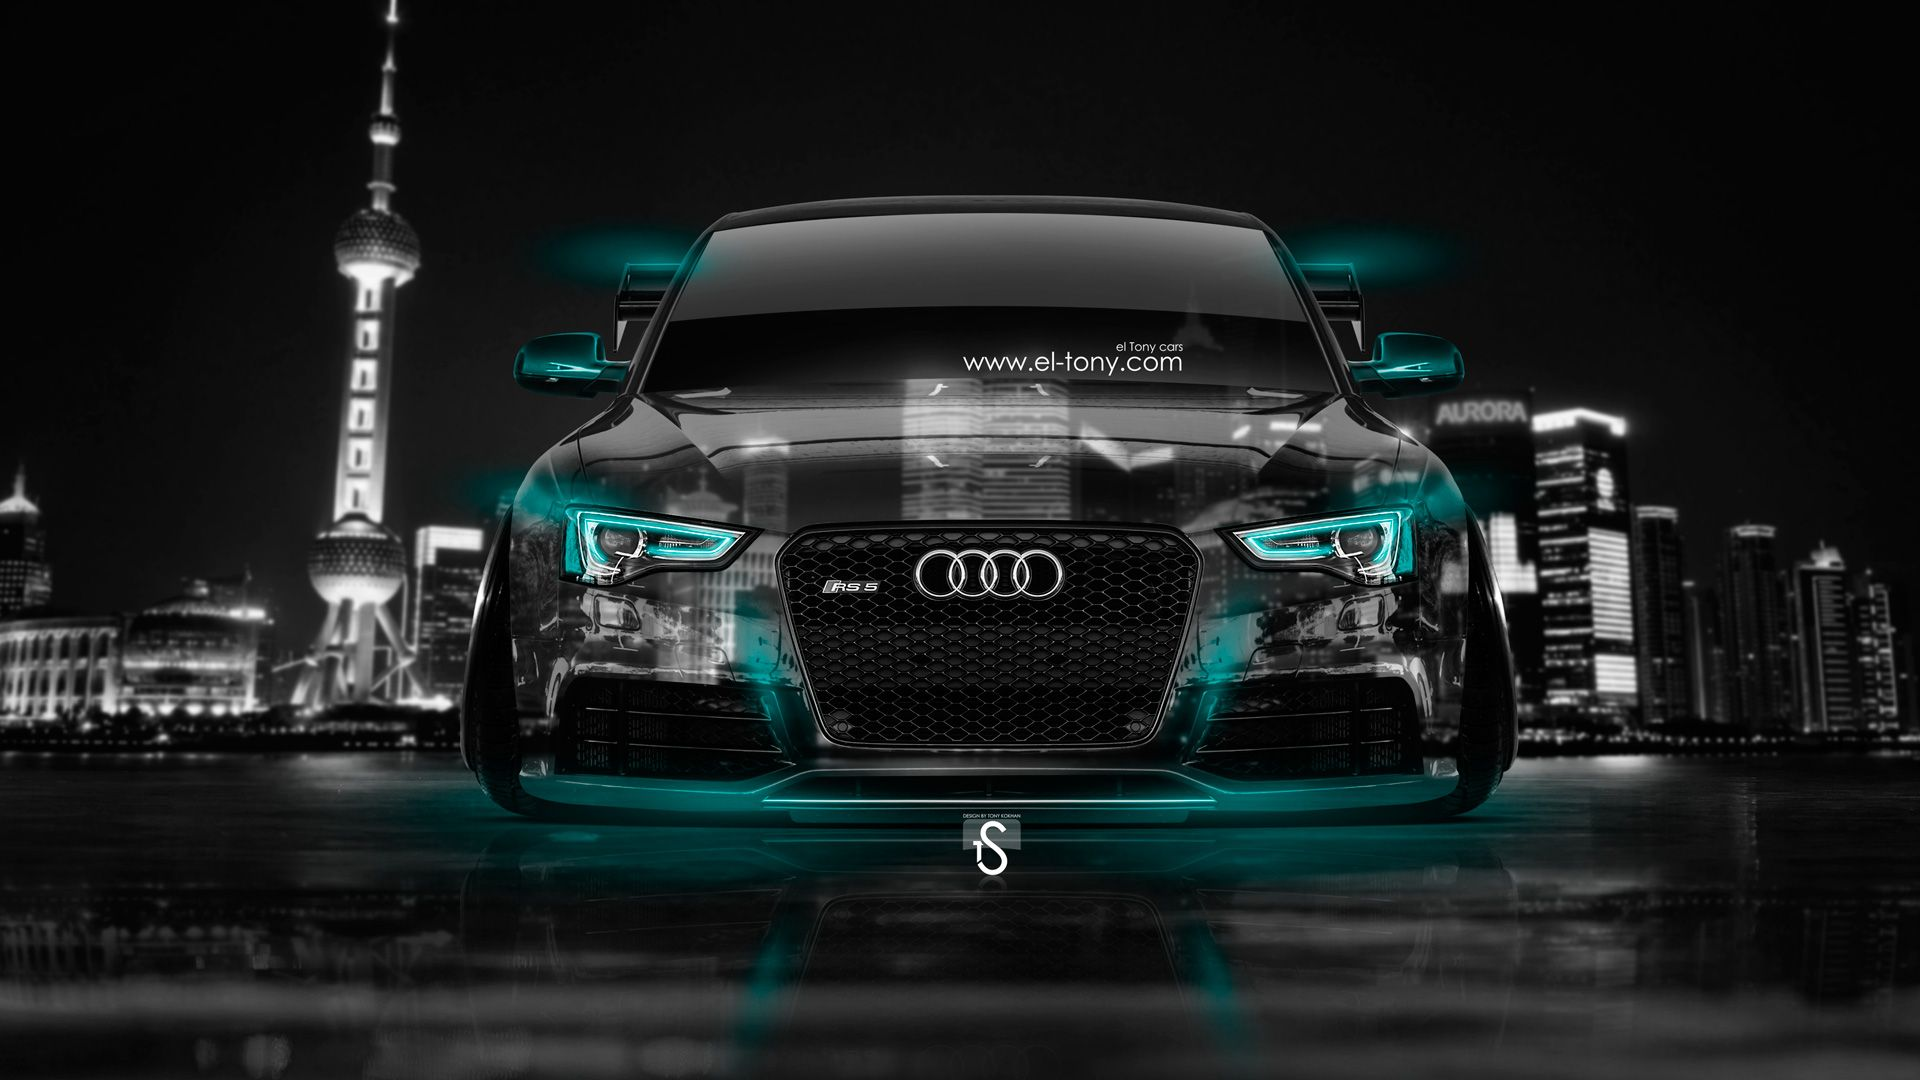 Audi Tuning Front Crystal City Car 2014   Audi Tuning Crystal City Car  Altezza JDM Front Crystal City Car Lancer Evolution X Tuning Front Crystal  City Car